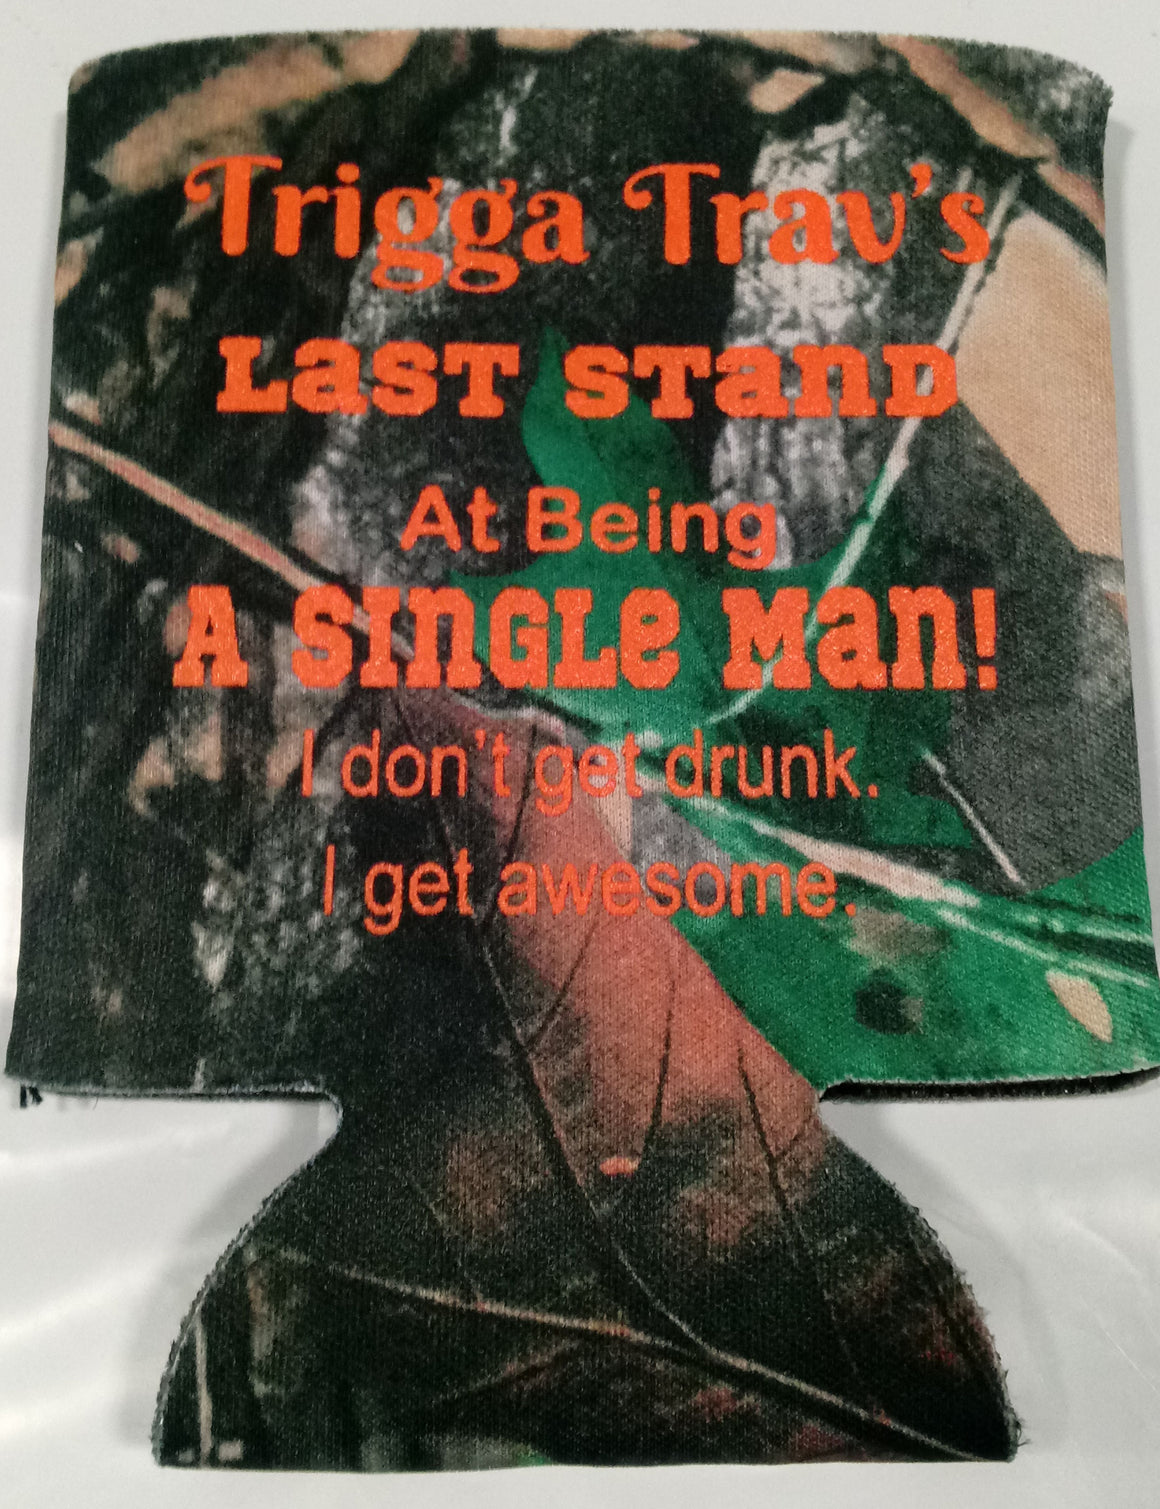 last stand at being a single man bachelor party koozie